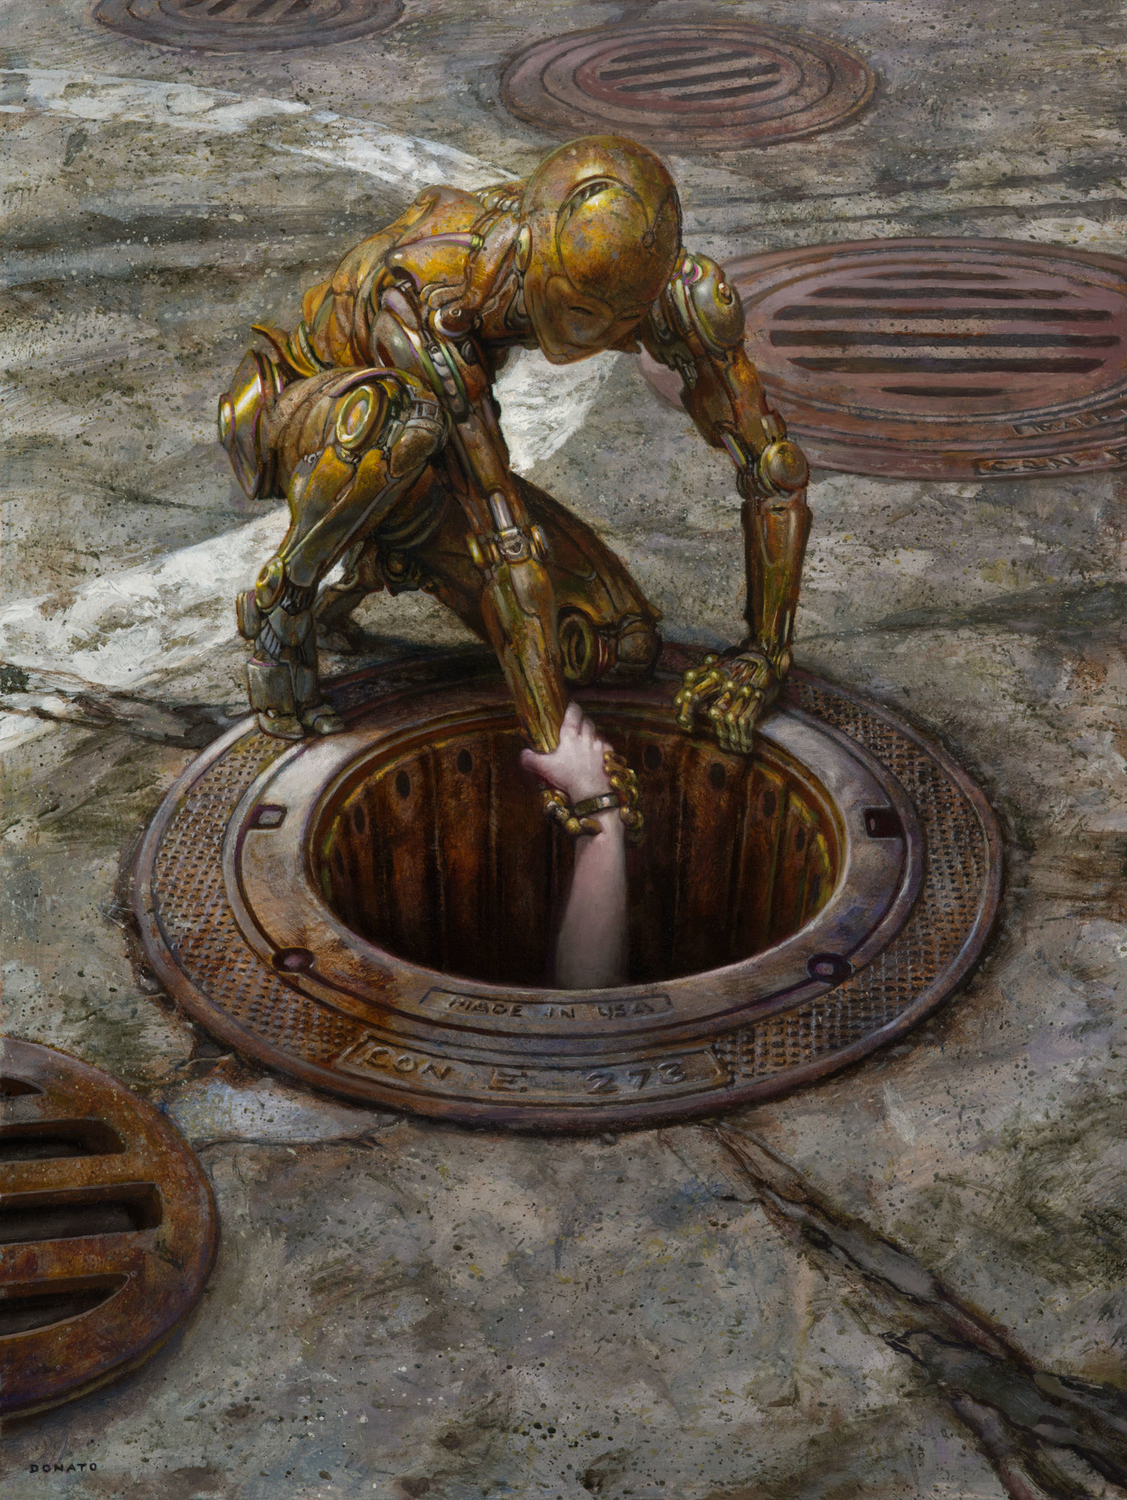 Reach Artwork by Donato Giancola